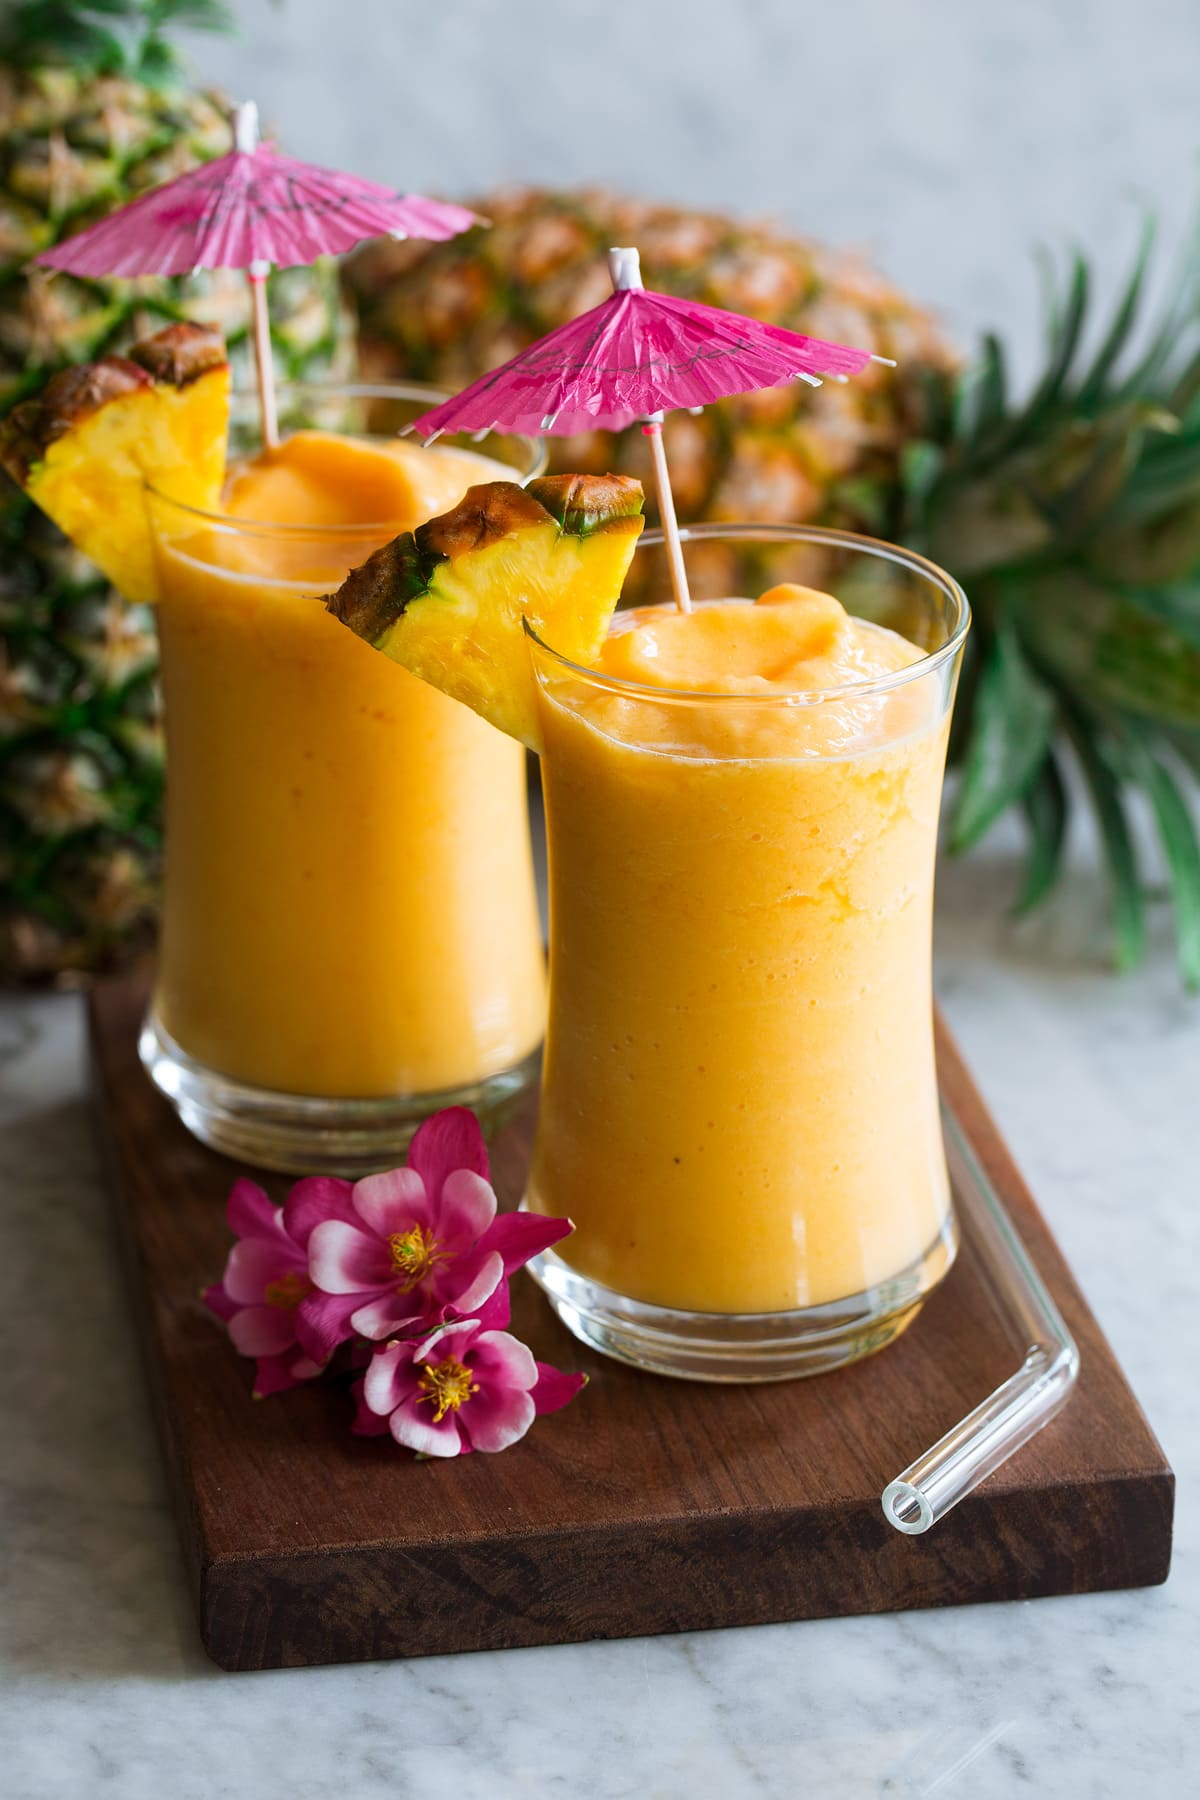 Photo: Two tropical smoothies shown in glass cups with pineapple wedges and decorative drink umbrellas for decoration. Tropical flowers are shown to the side and pineapples in the background.